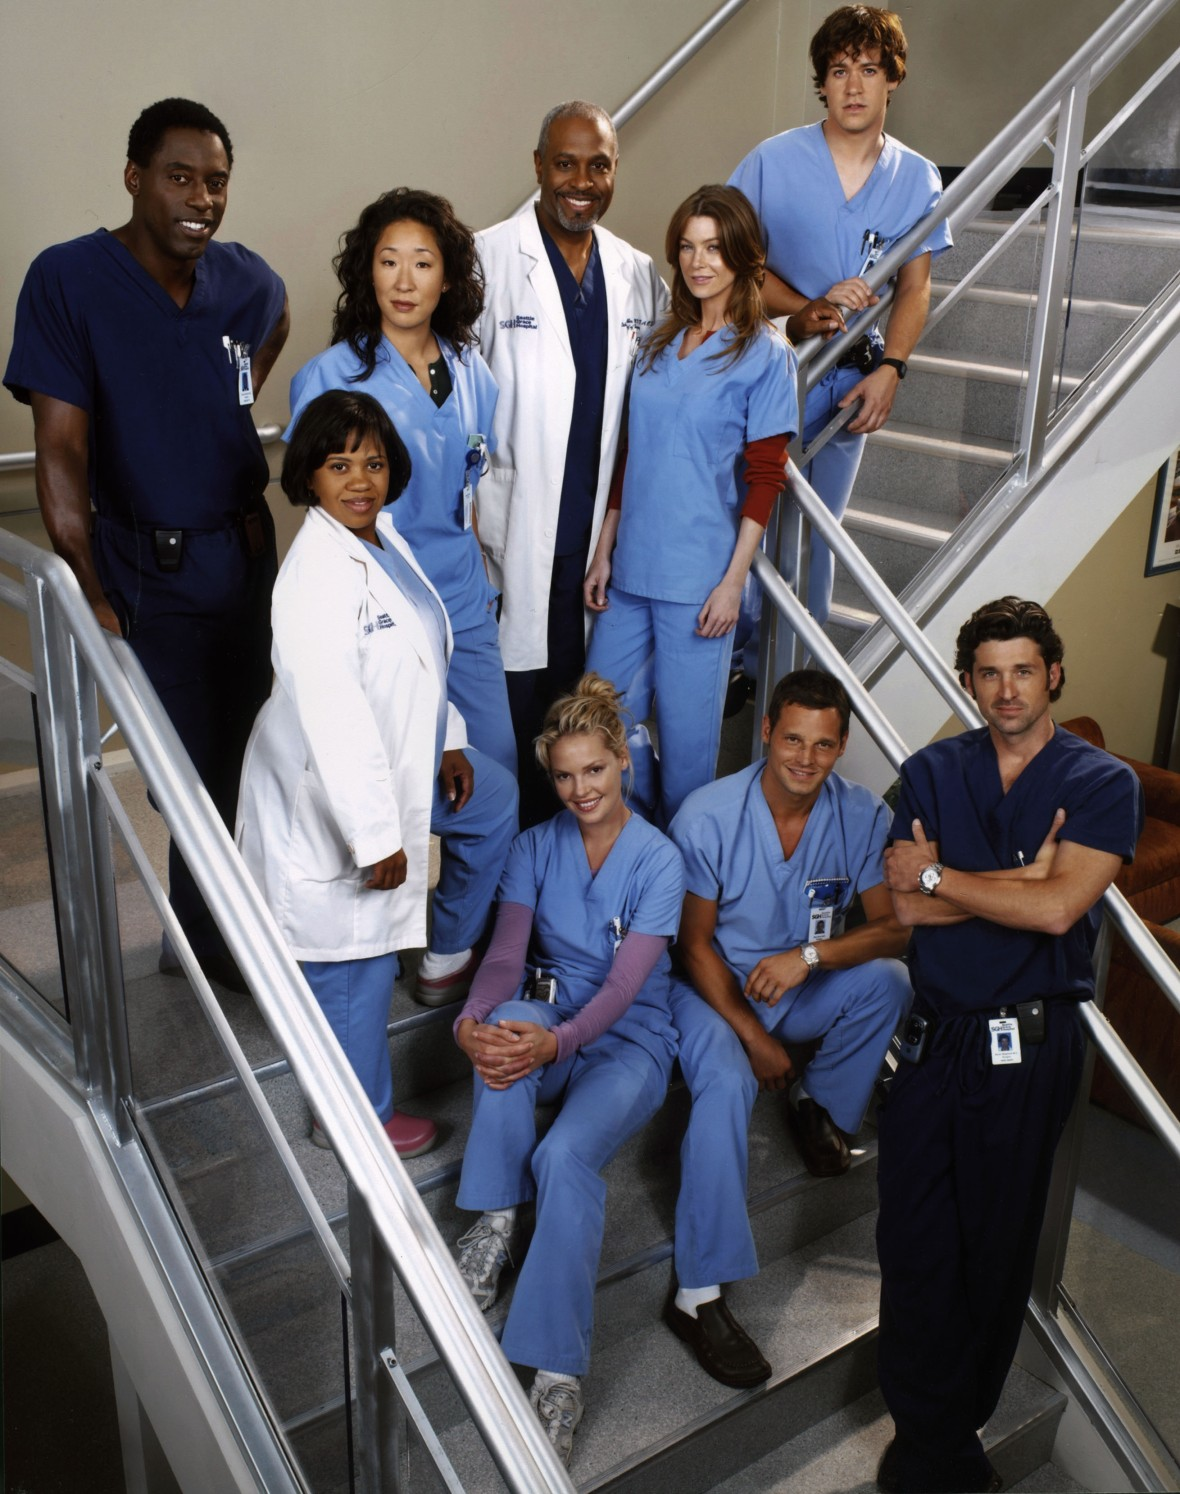 Grey's Anatomy Season 1 Original Cast